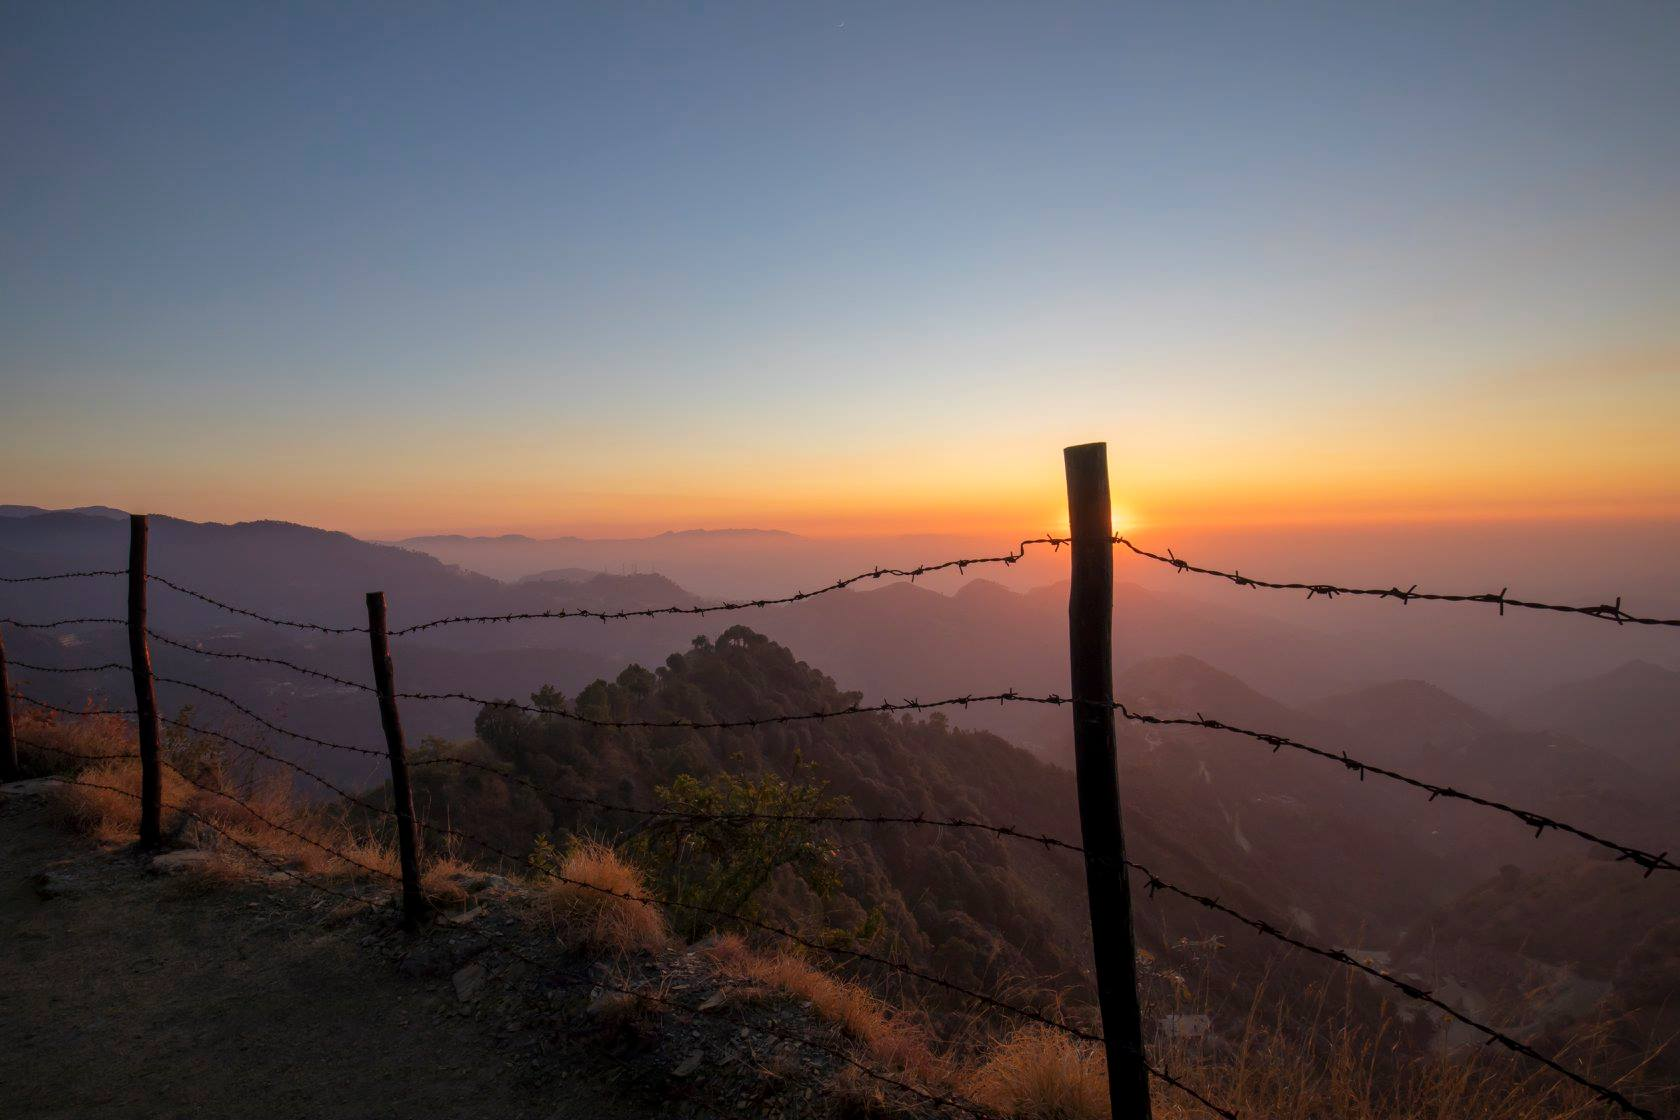 Sunset from The ridge at Aamod Resort Shoghi